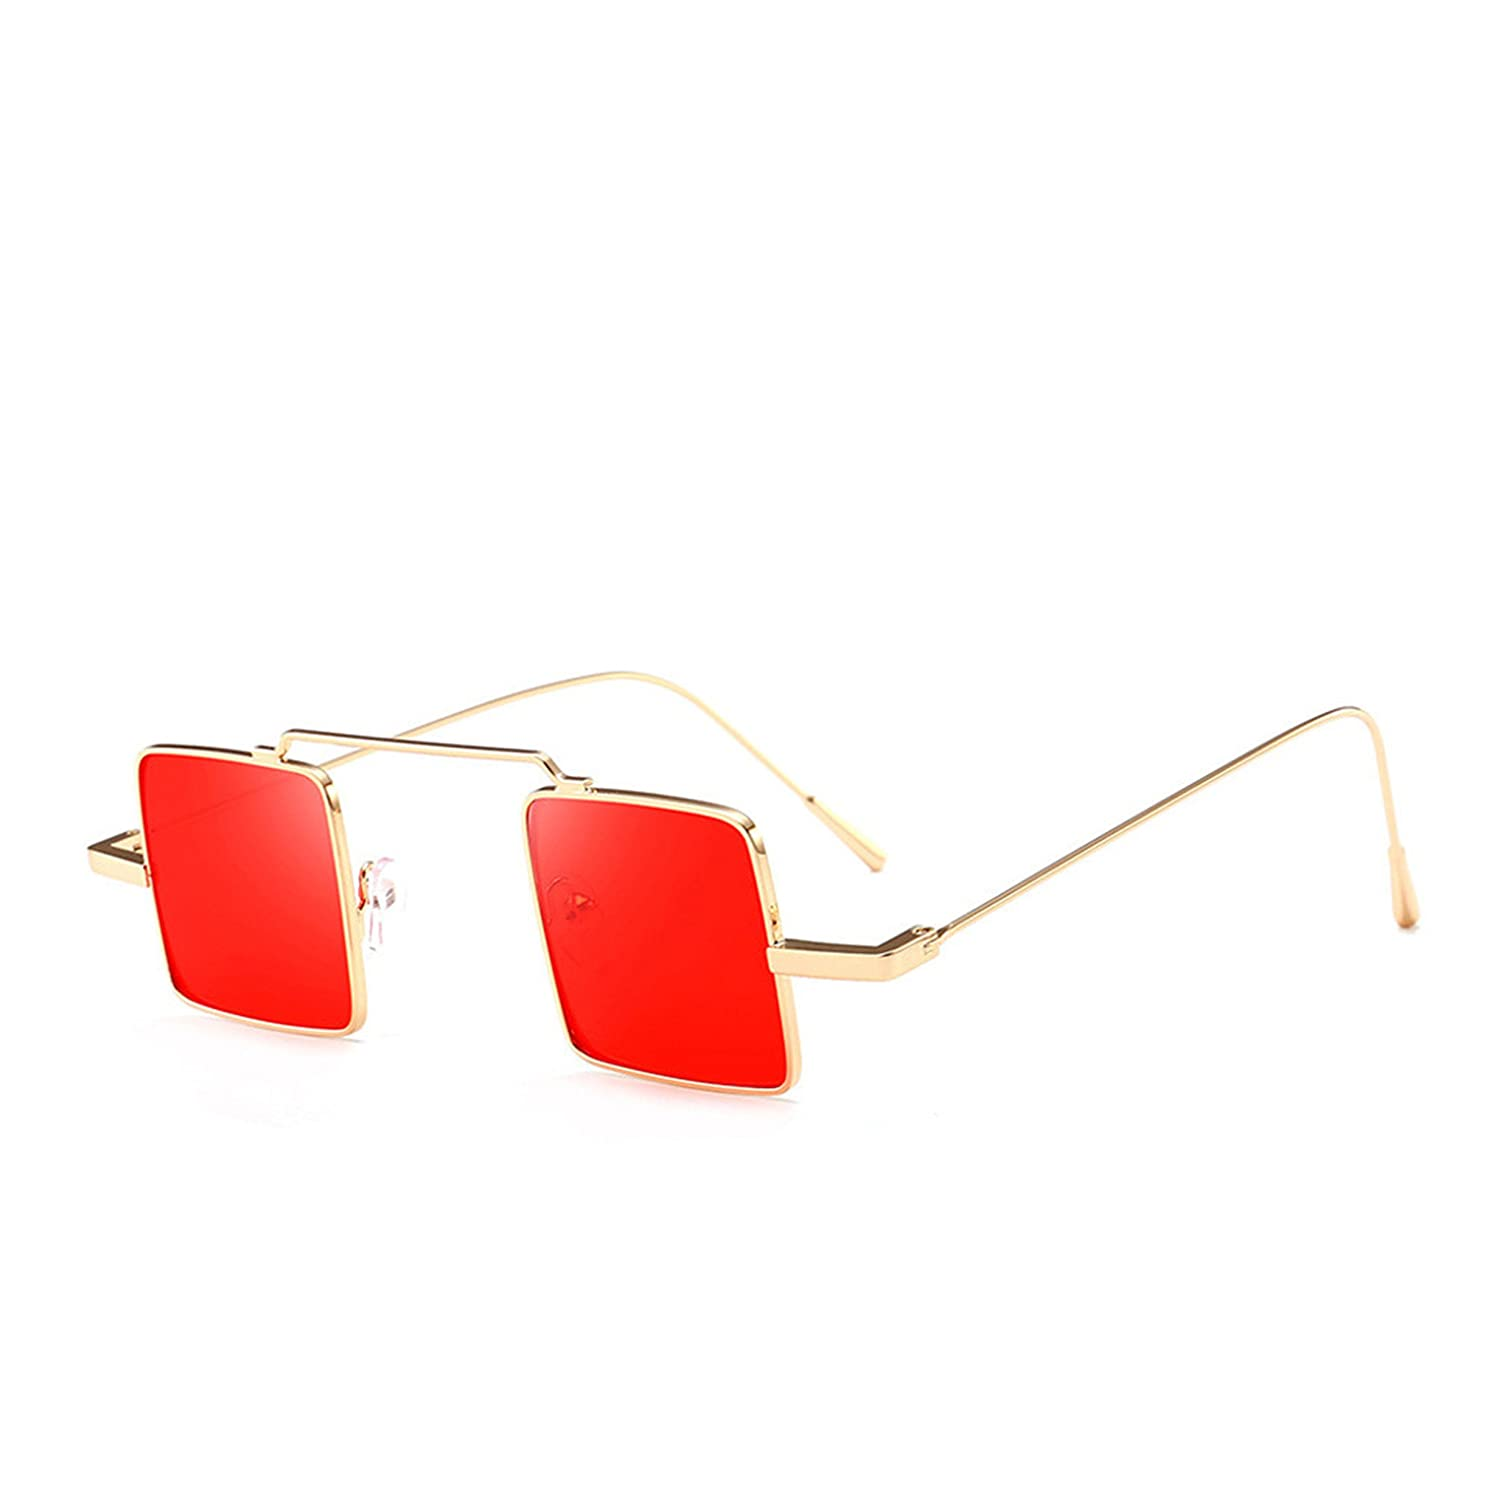 HOT SALE BYEEE Sunglasses for adults Unisex Candy Colored Square Polarized Sunglasses Aviator Sunglasses Eyewear